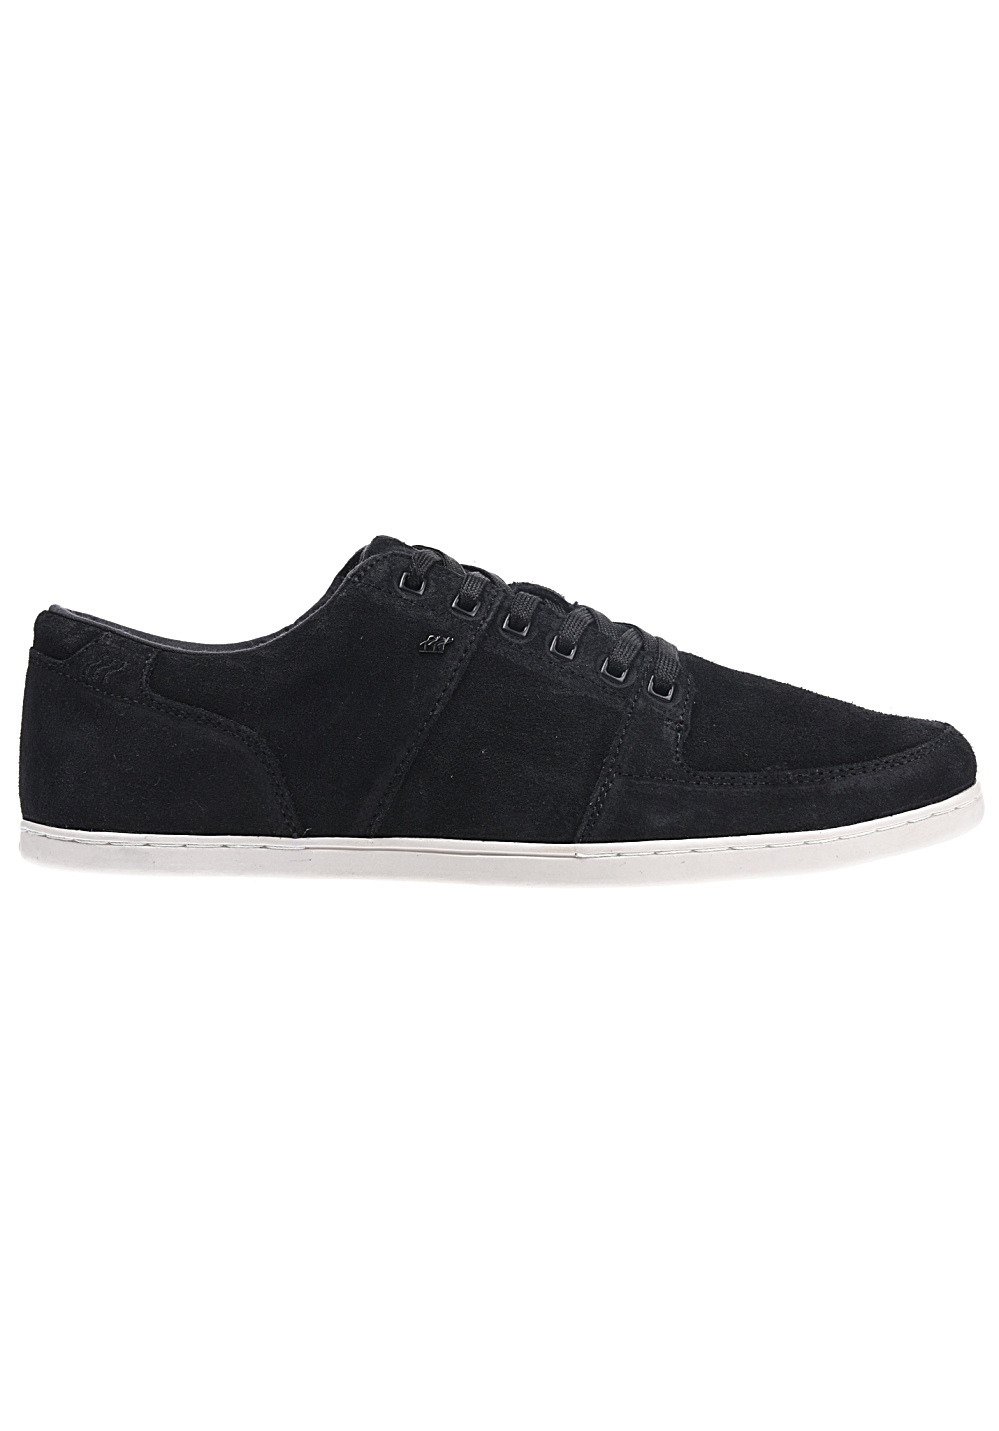 ... BOXFRESH Spencer Waxed Suede - Sneakers for Men - Black. Previous